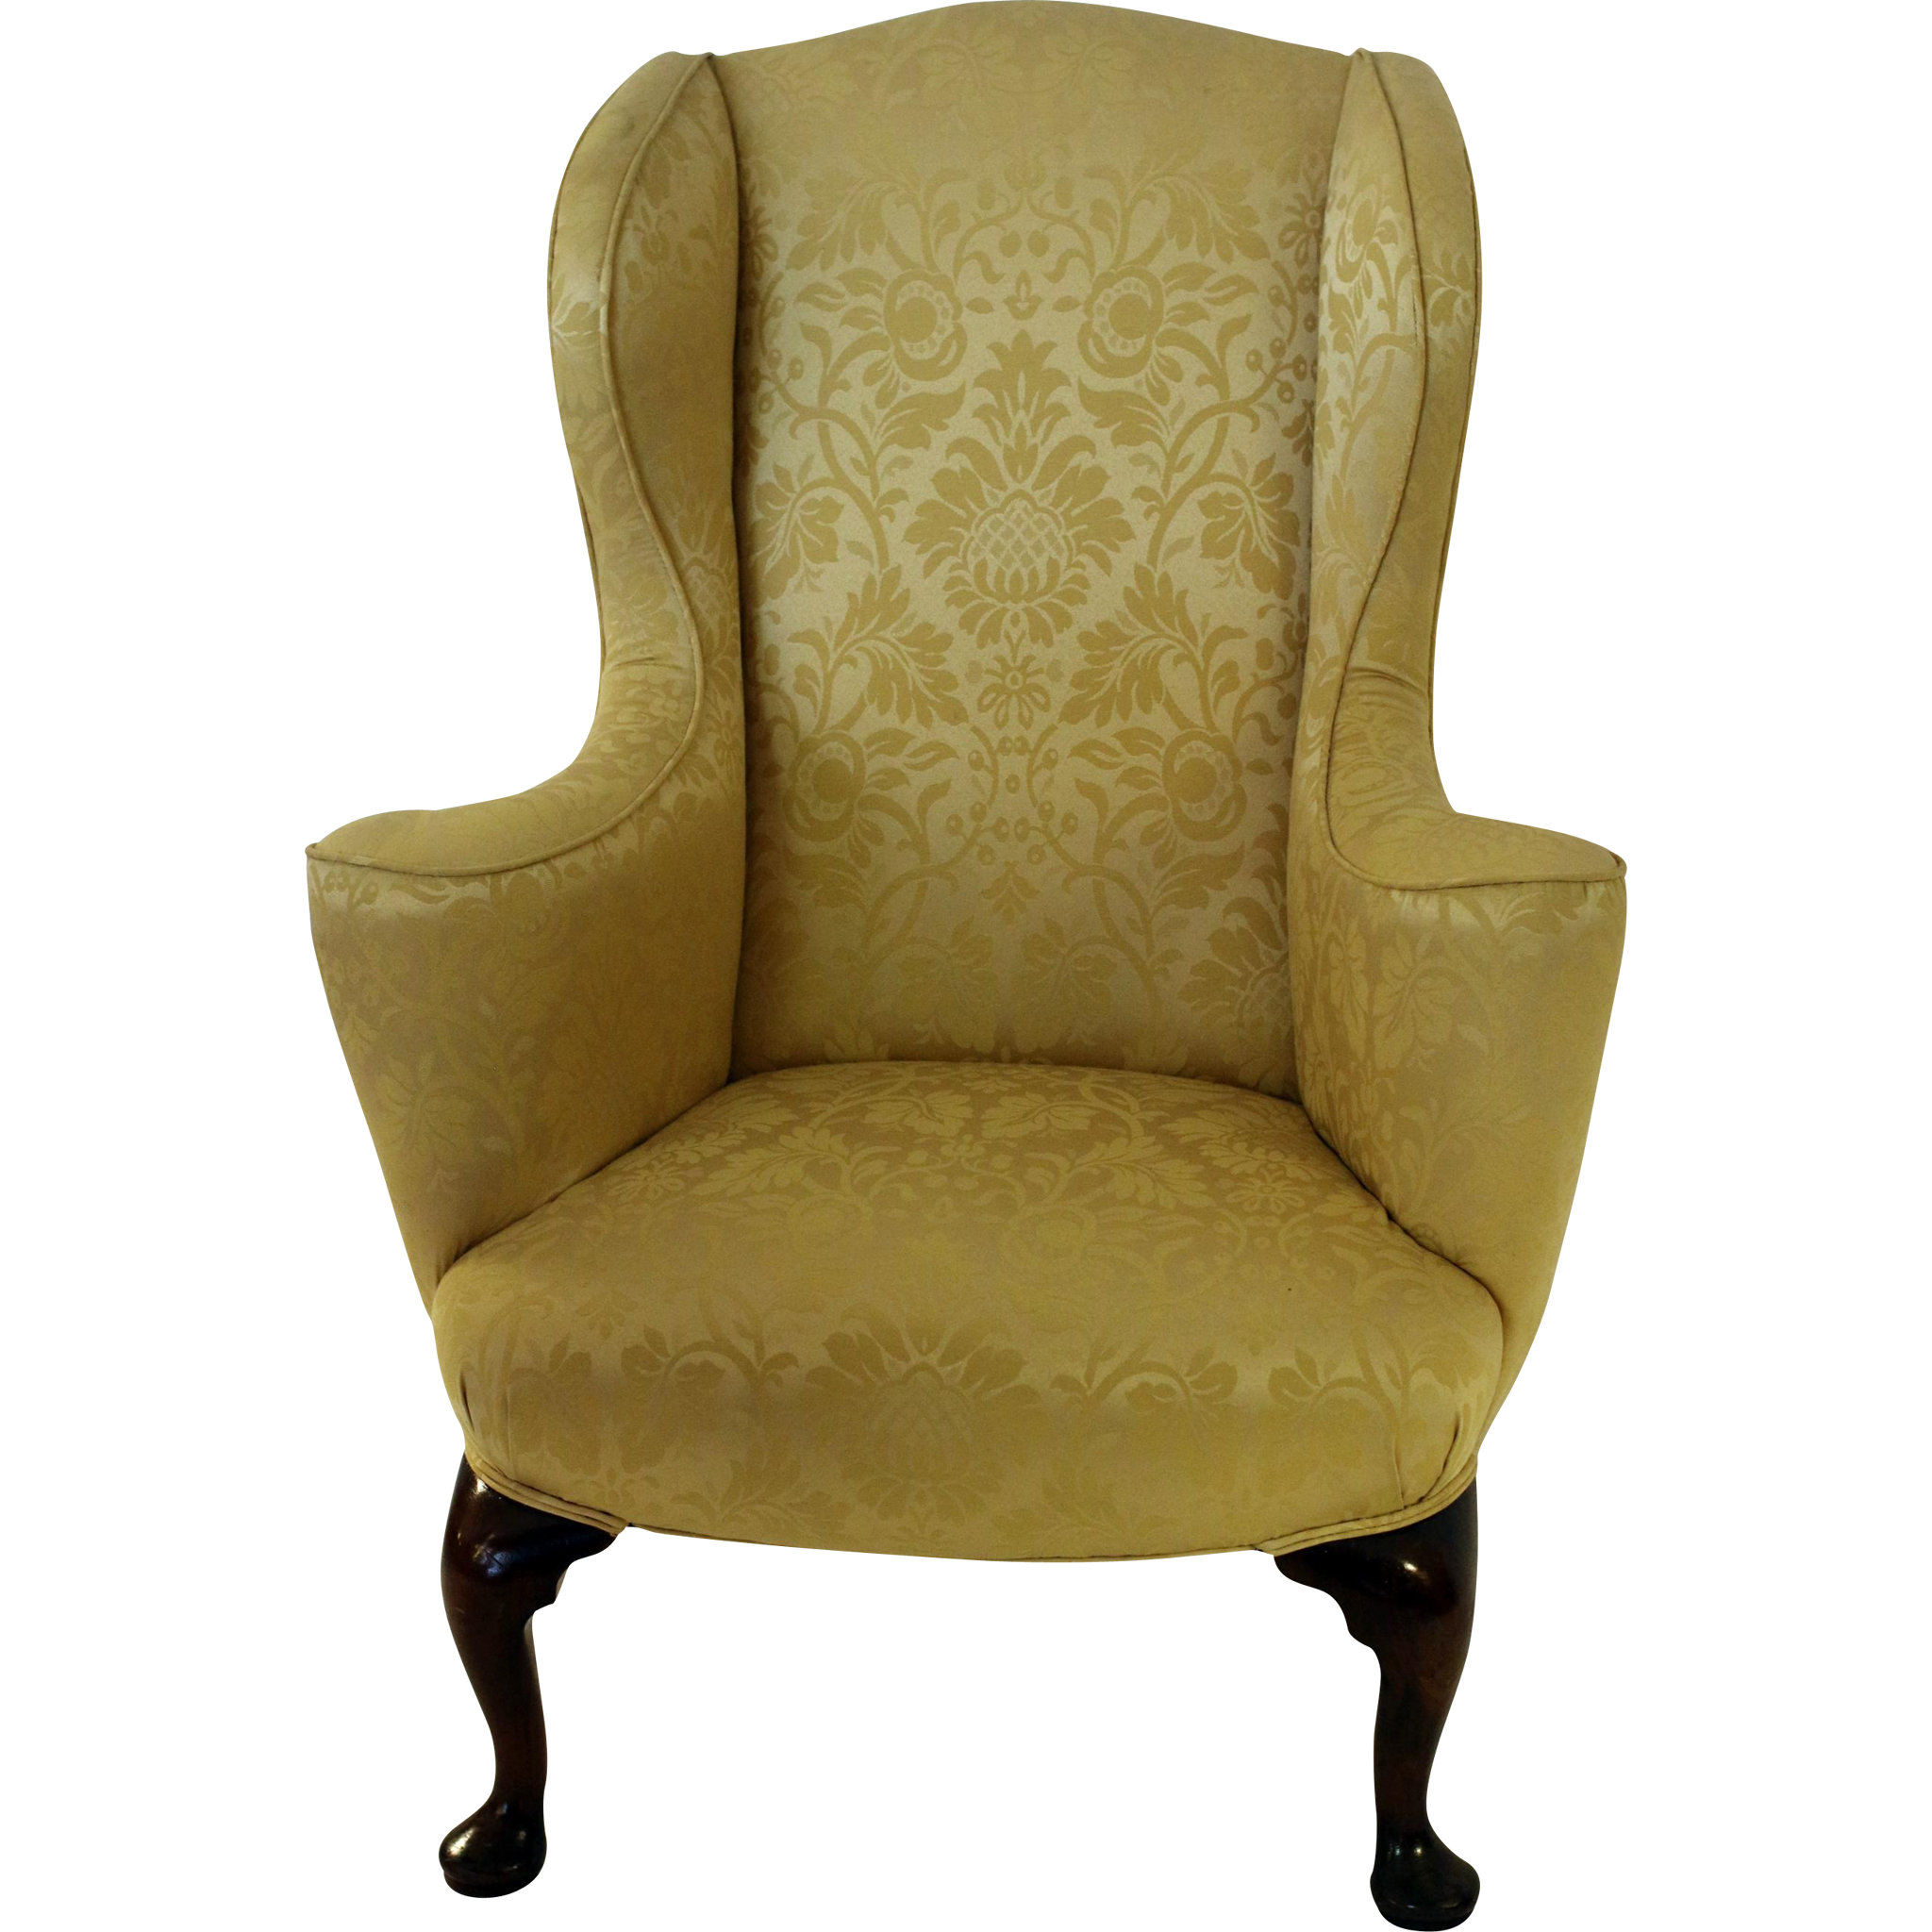 18th Century English Wingback Chair from savannahgalleries on Ruby